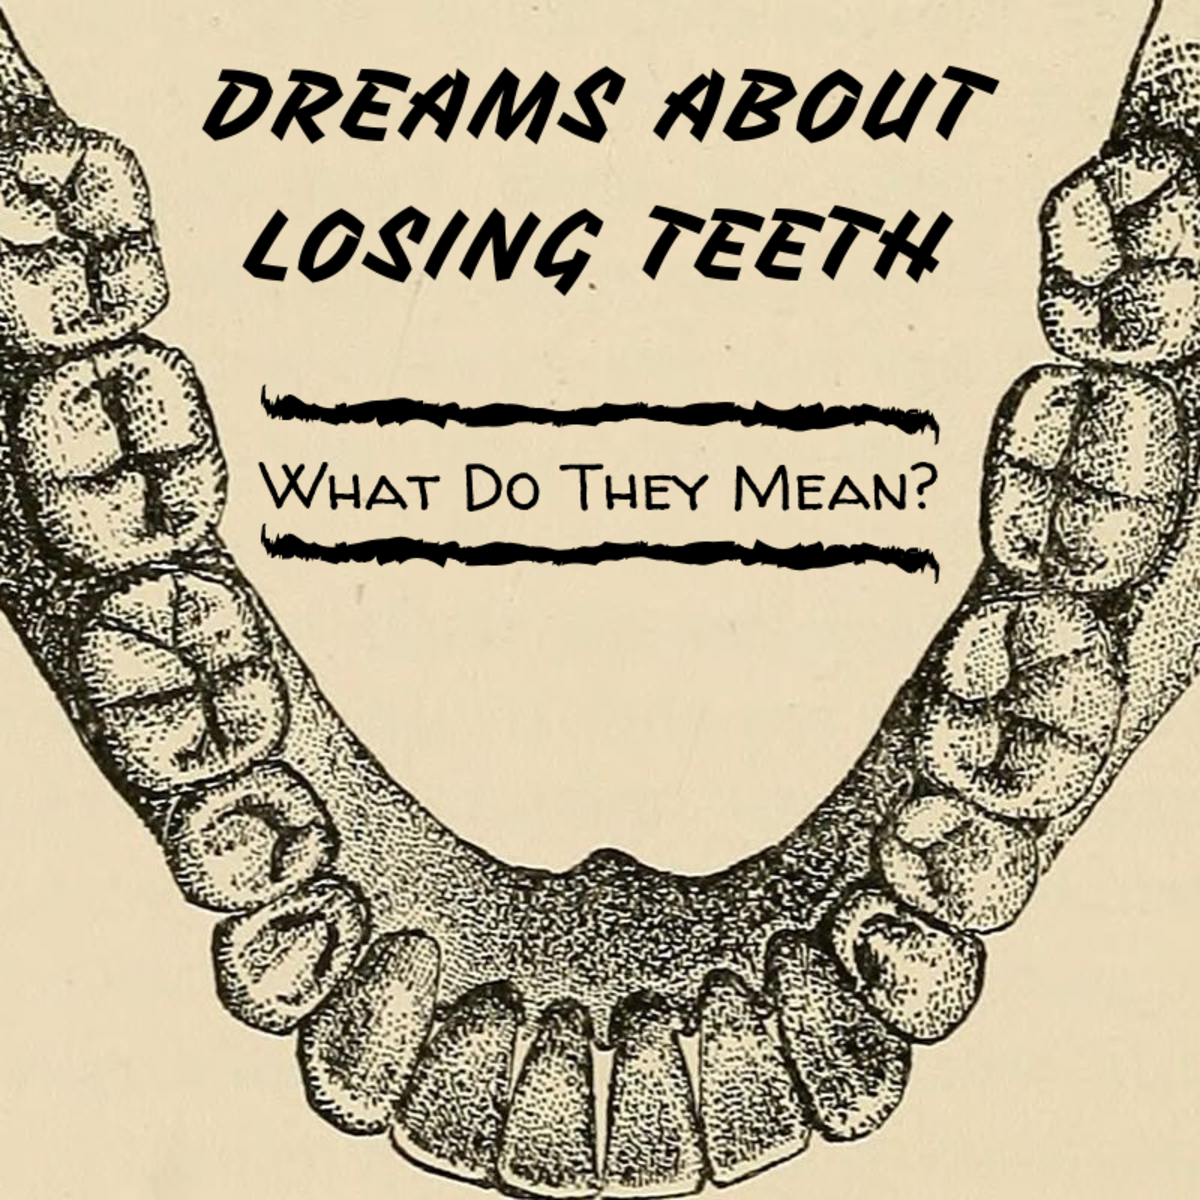 What Do Dreams About Teeth Falling Out Mean? 6 Ways to Interpret a Common Nightmare